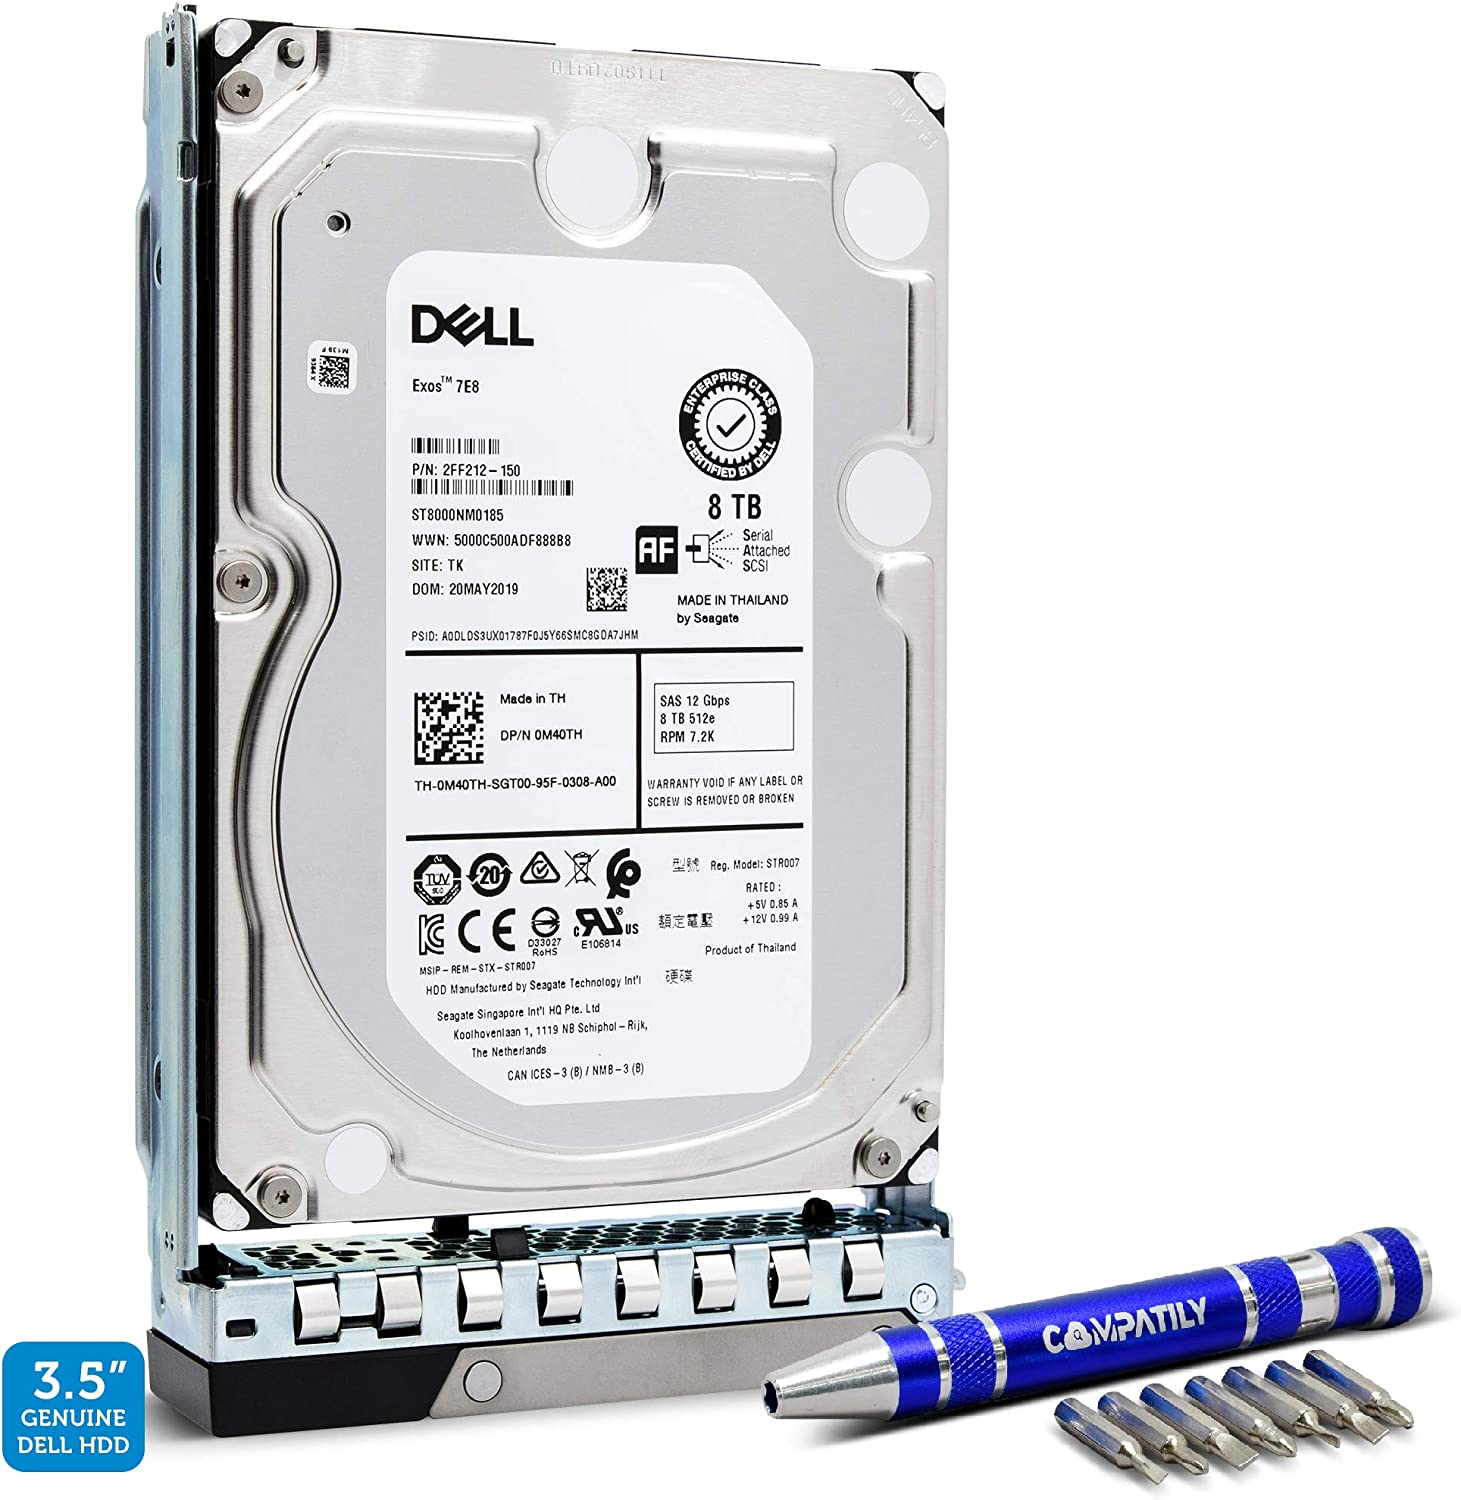 Dell 400-ATKR 8TB 7.2K SAS 12Gb/s 3.5-Inch EMC PowerEdge HDD in 14G Tray | Exos 7E8 ST8000NM0185 Enterprise Hard Drive | Bundle with Compatily Screwdriver Compatible with M40TH R440 R540 R640 R740